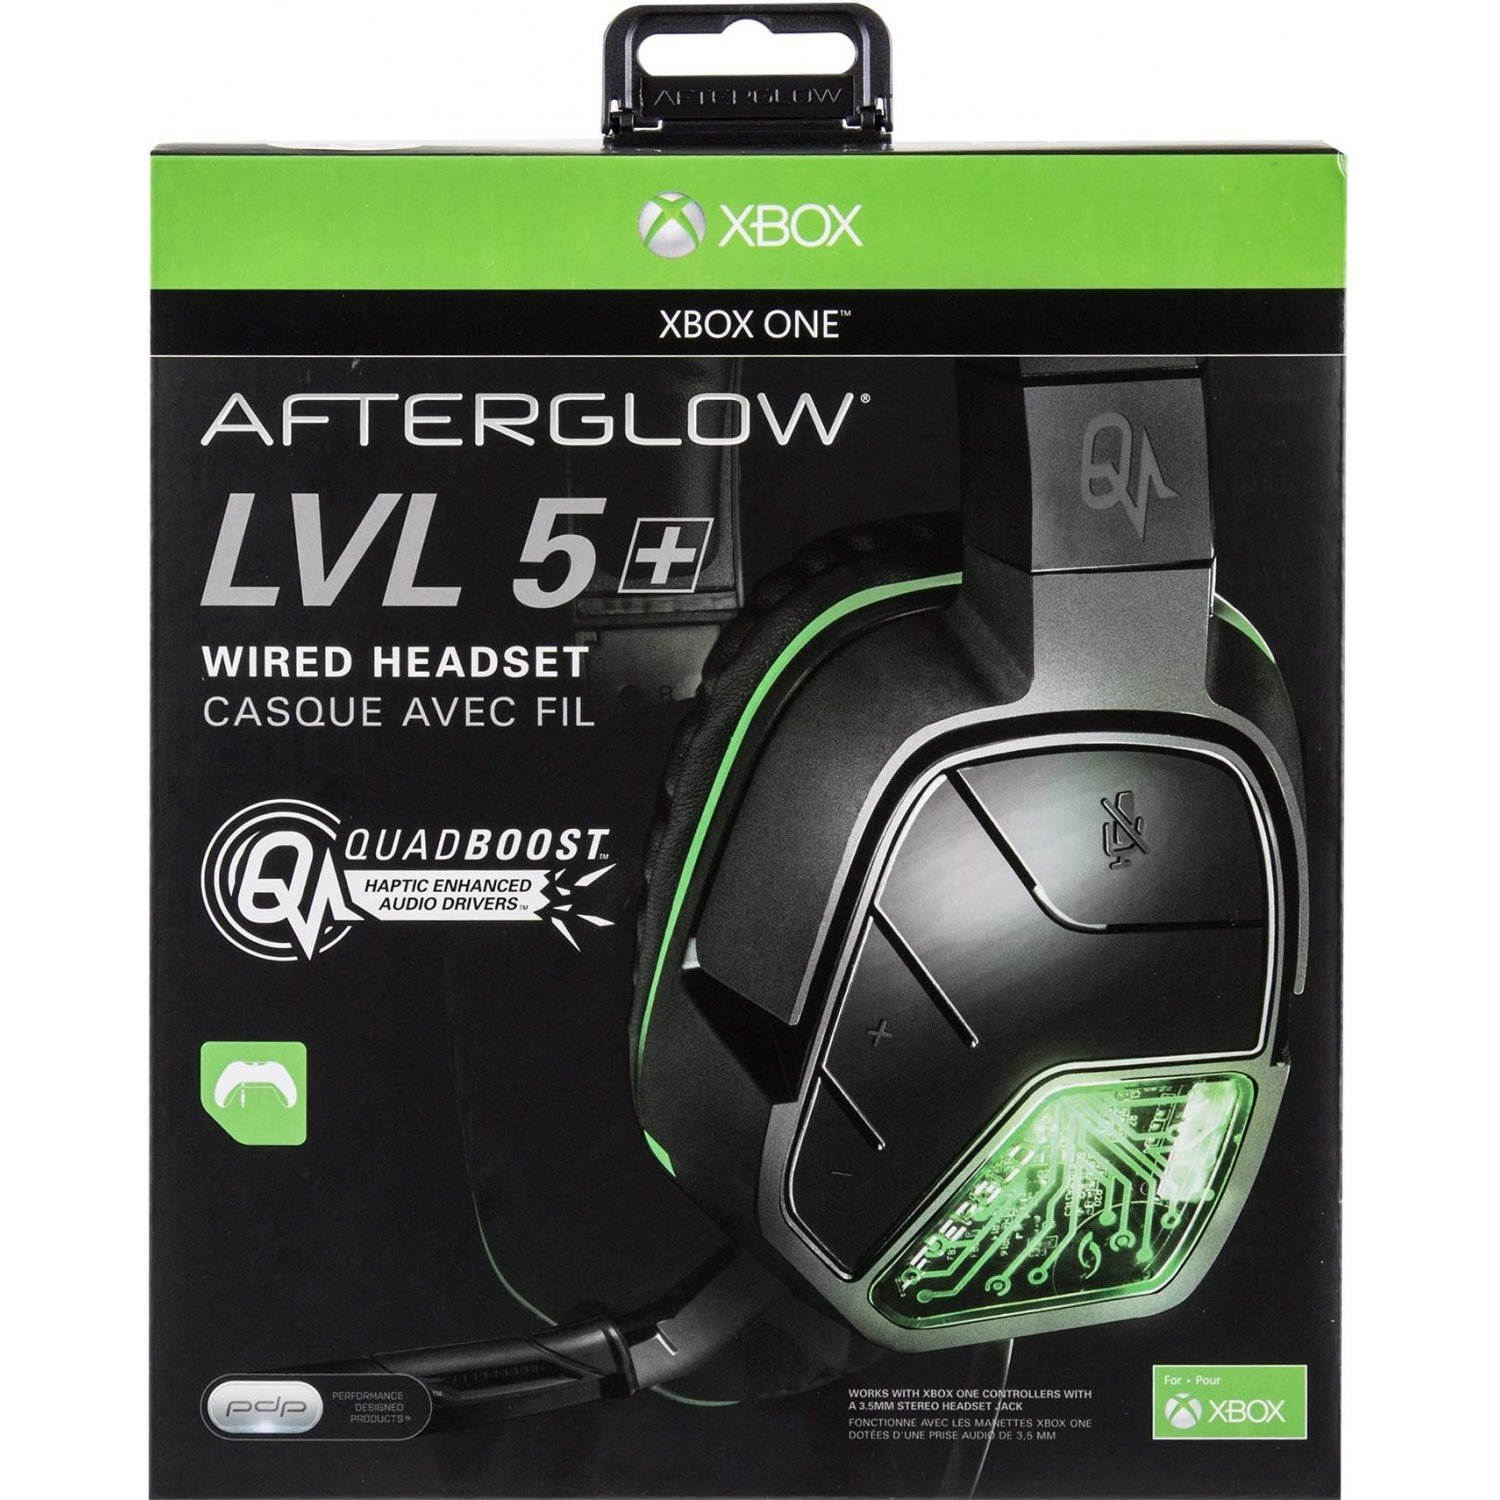 Pdp Afterglow Lvl5 Stereo Headset For Xbox One